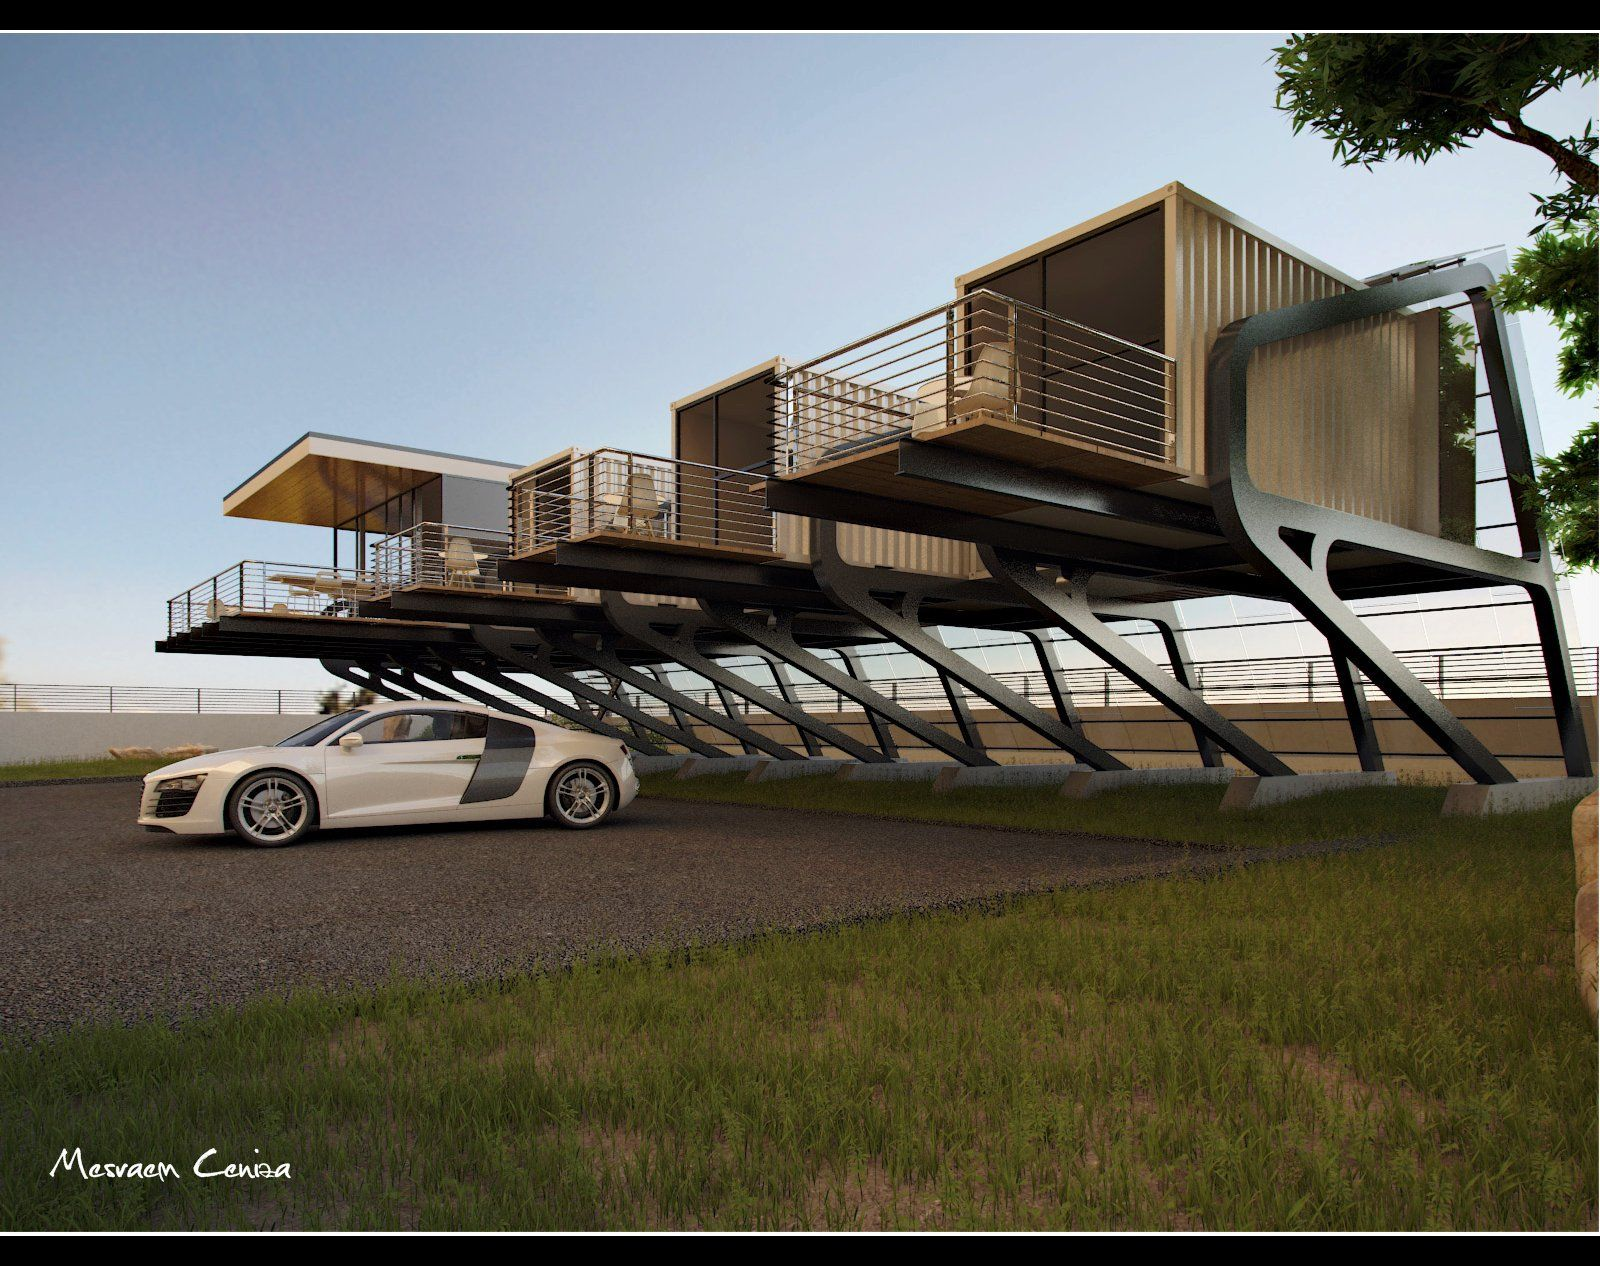 live above ground in a container house with a balcony. great idea